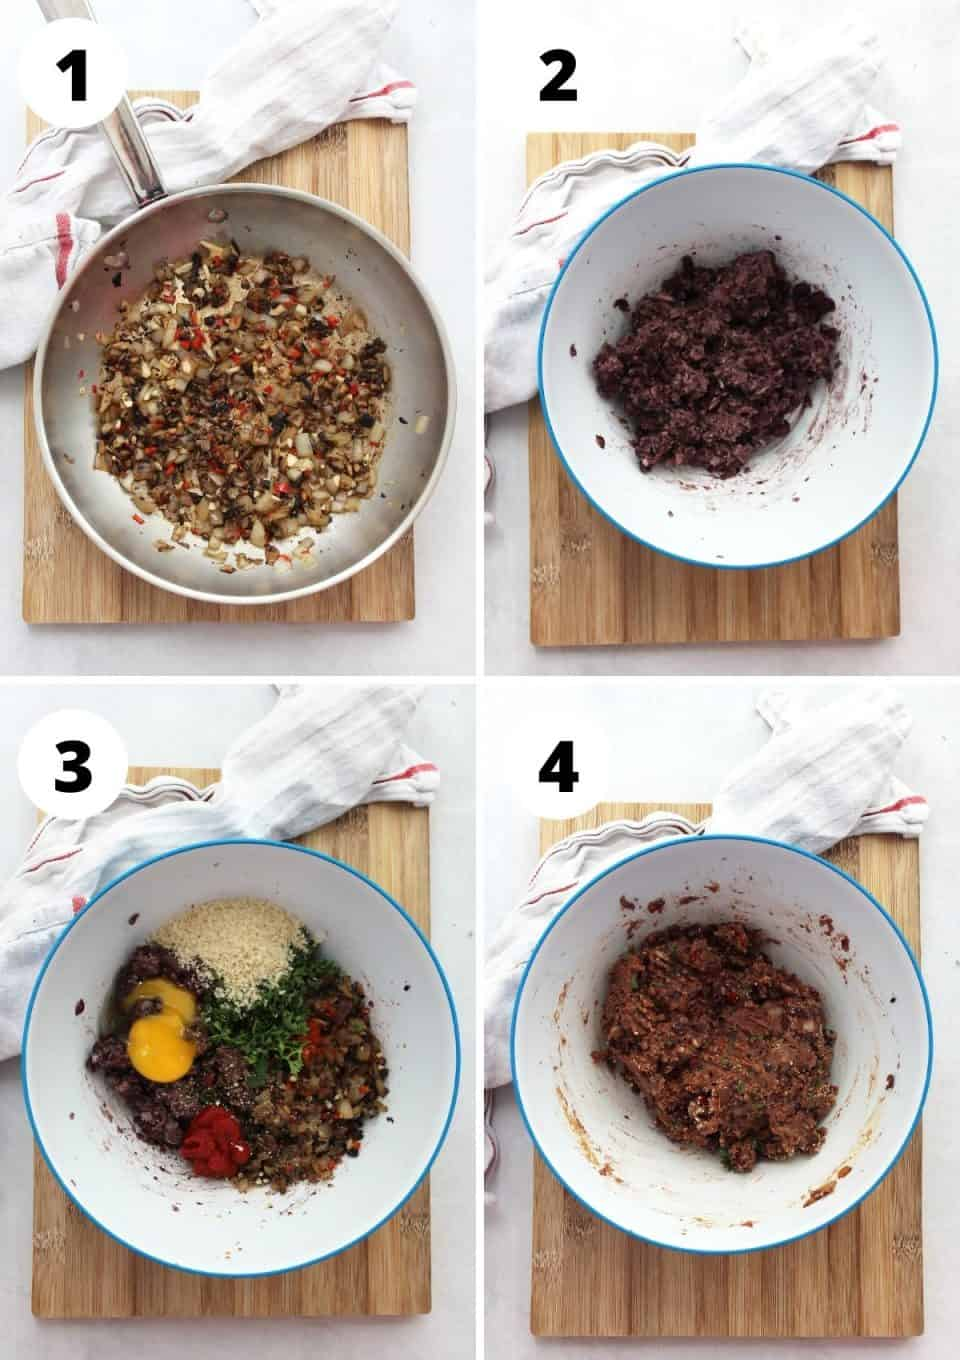 Four step by step photos to show how to make the bean burger mix.